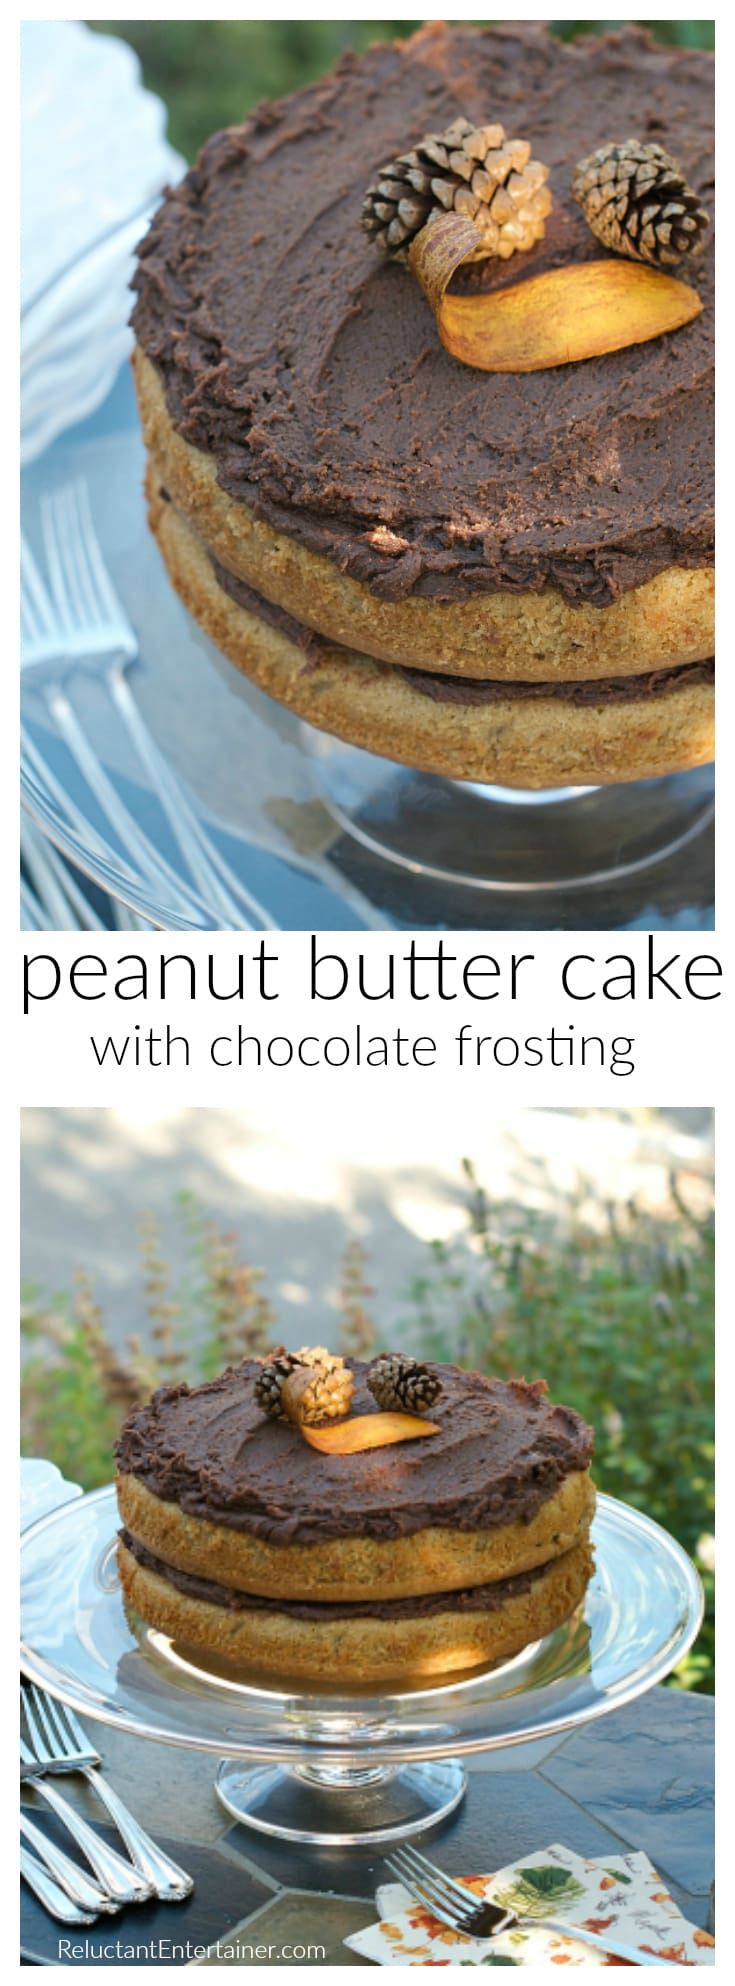 Peanut Butter Cake with Chocolate Frosting at ReluctantEntertainer.com